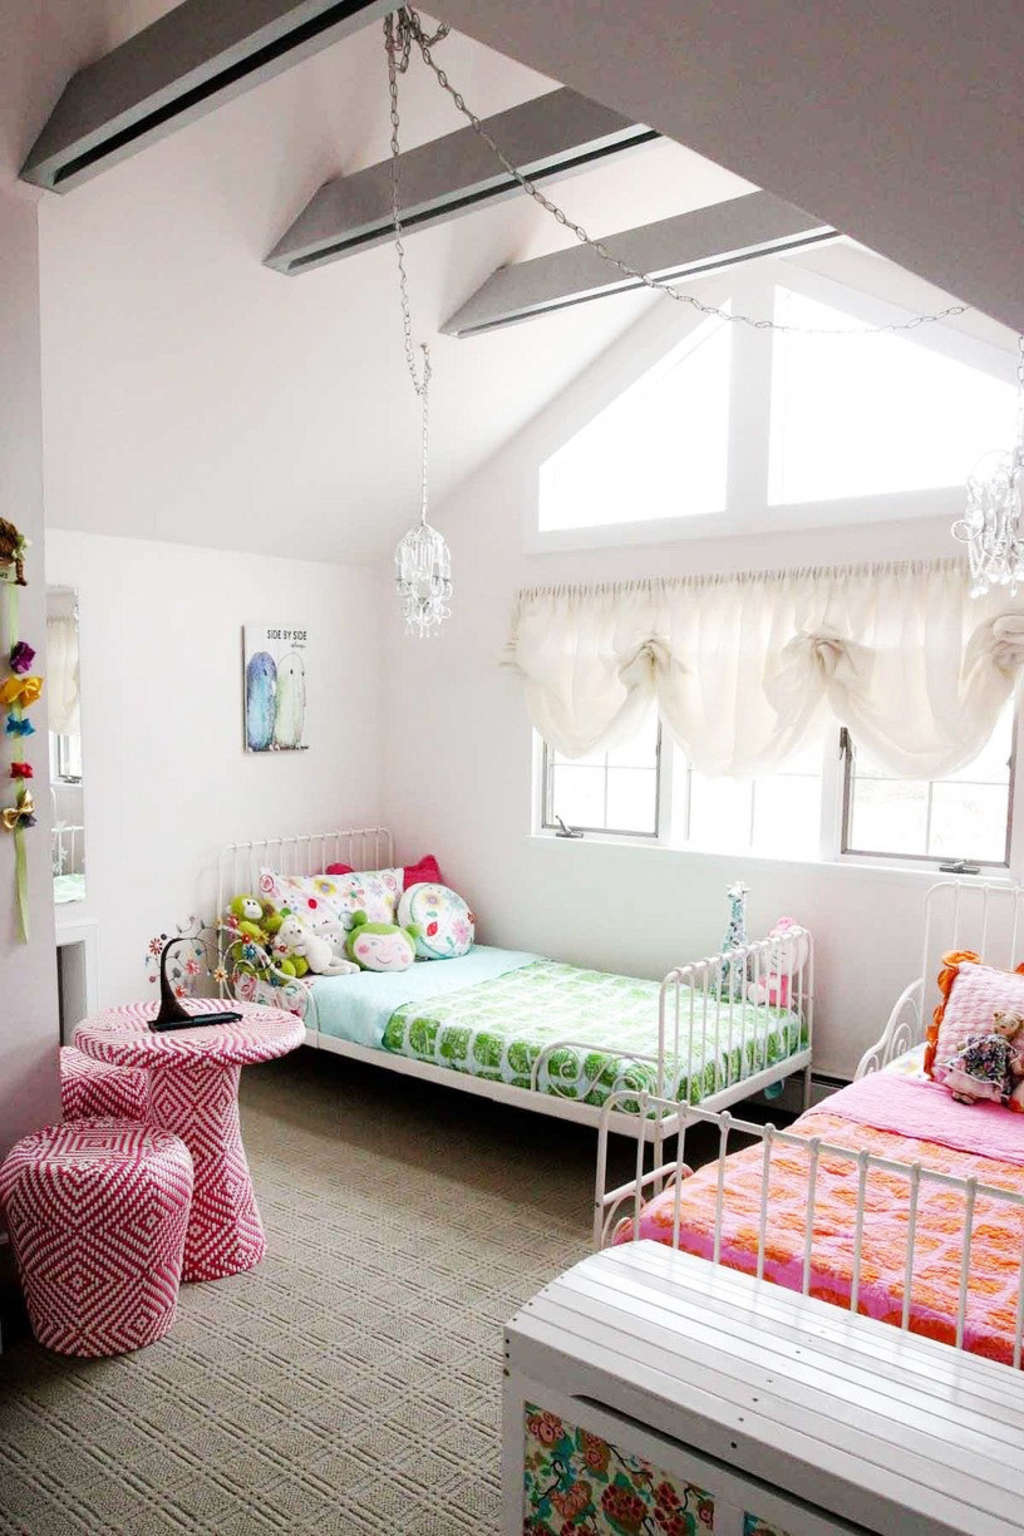 How To Stick To A Budget in Your Nursery or Kids Room